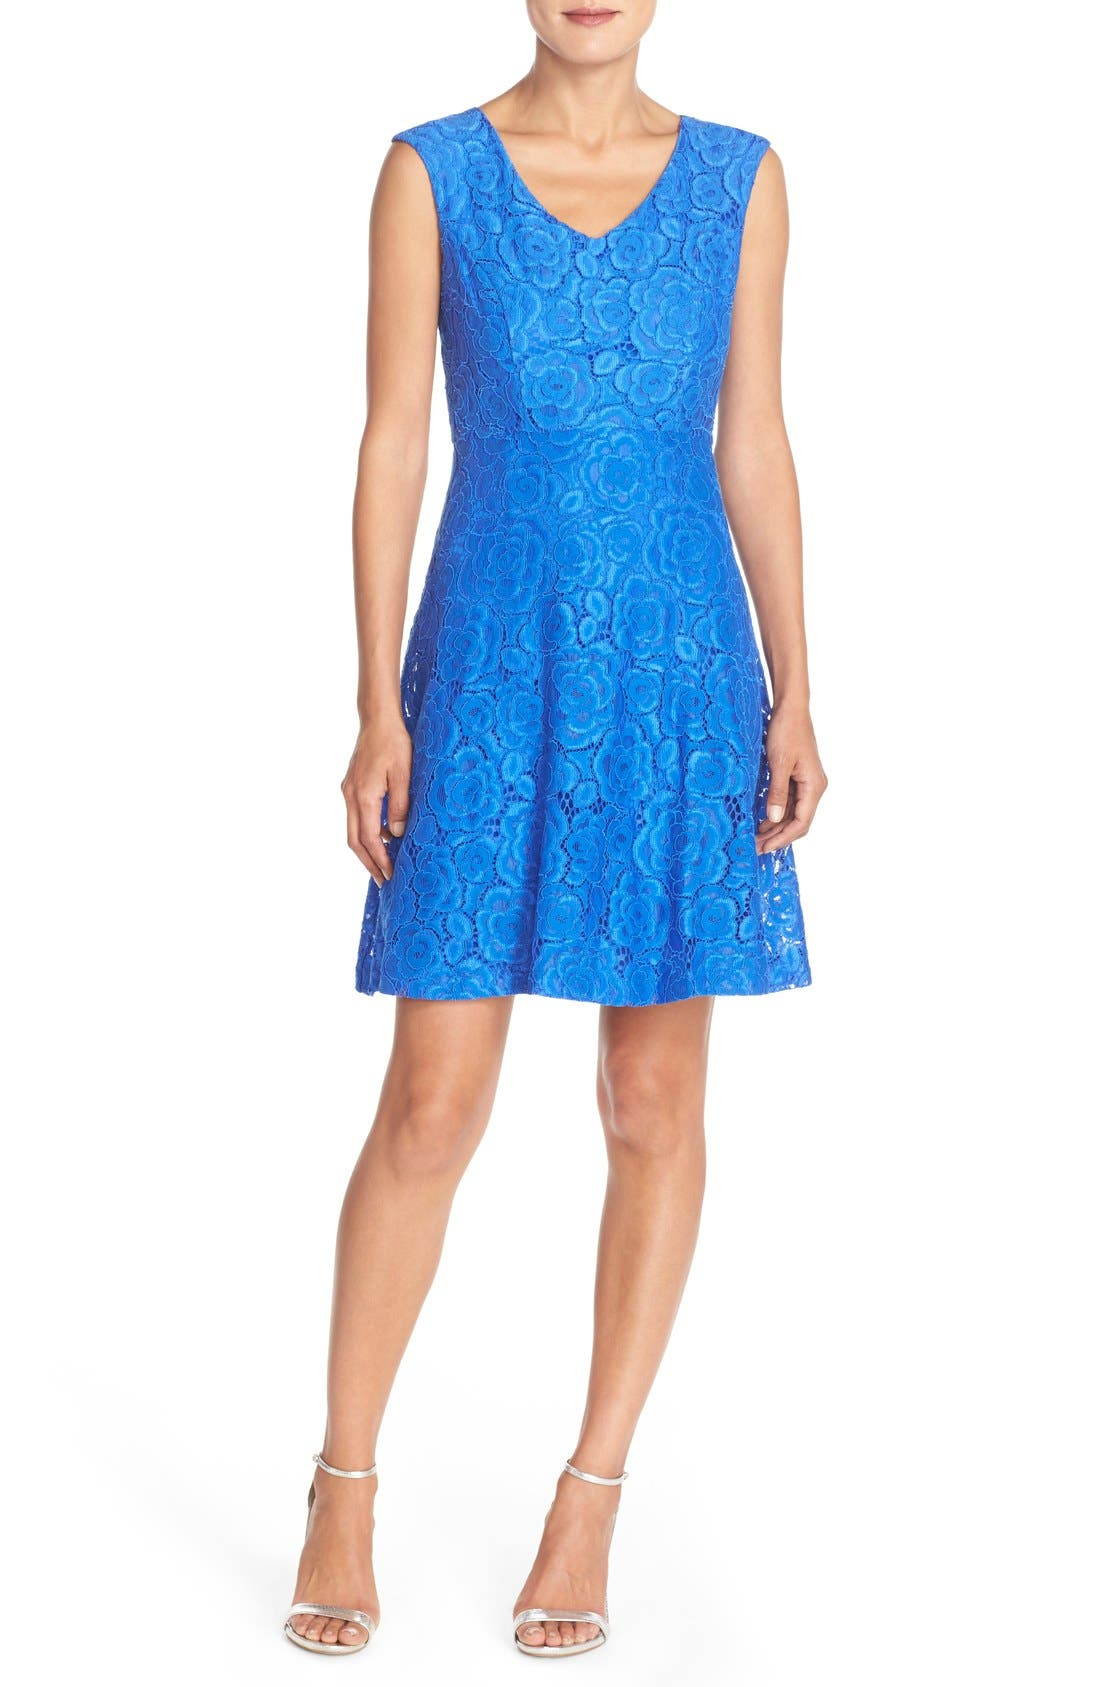 ELLEN TRACY Lace Fit & Flare Dress